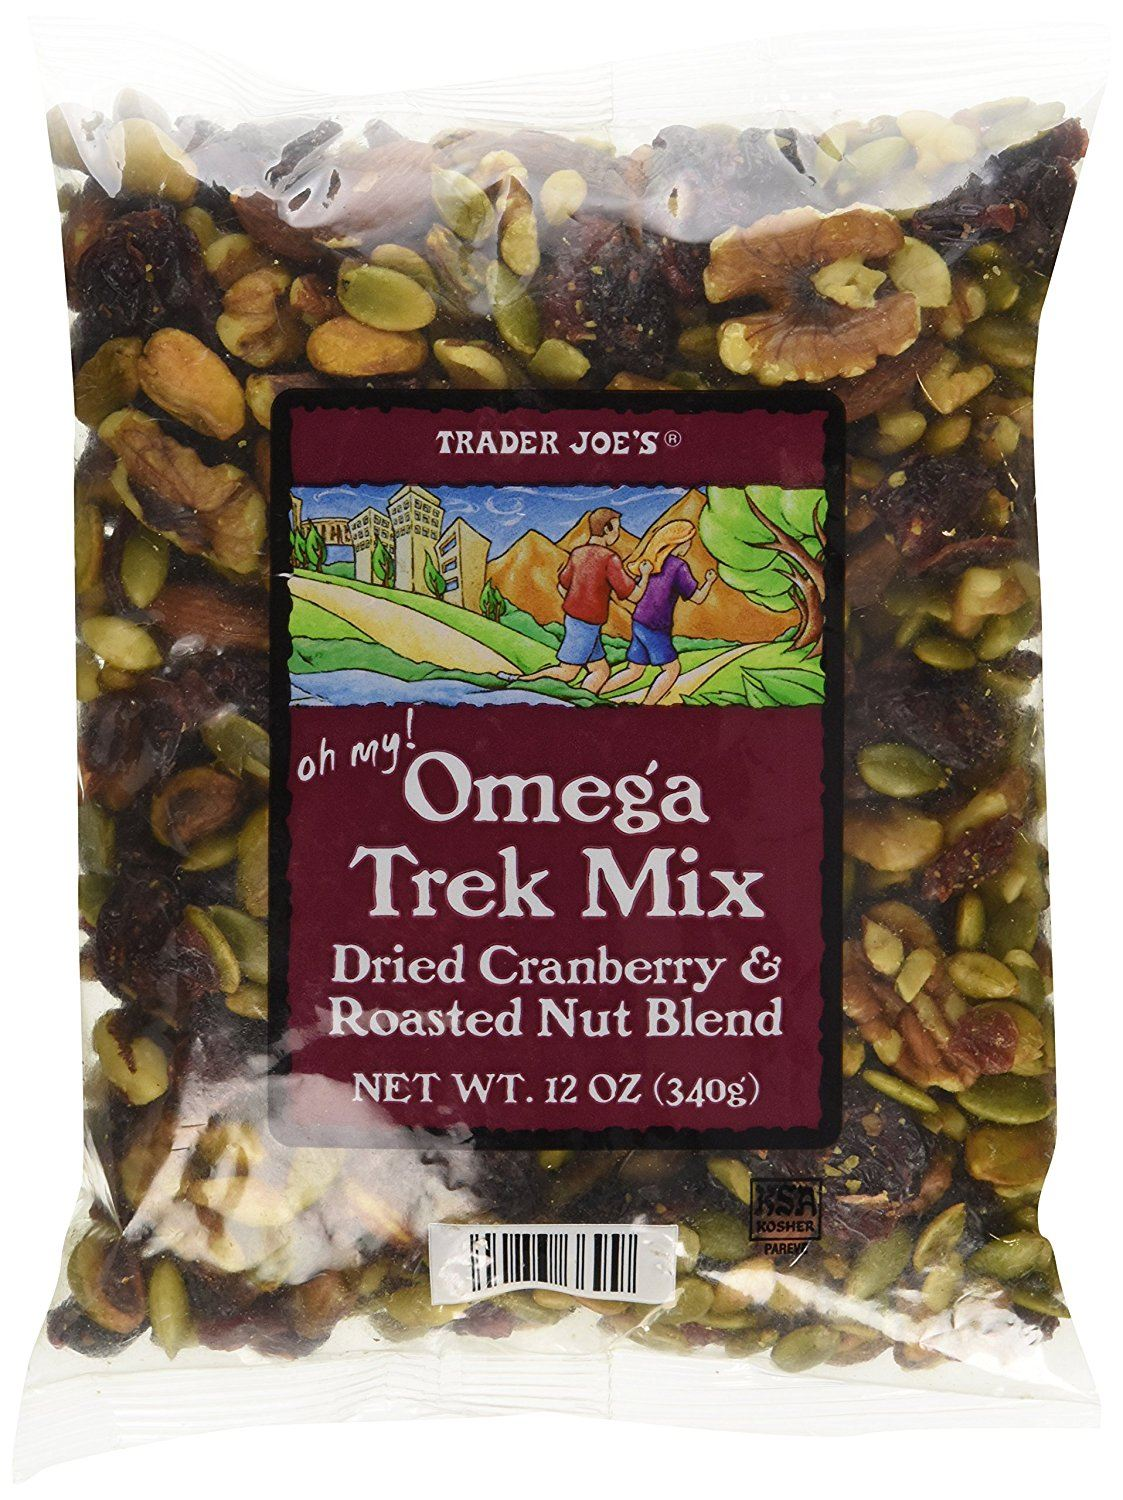 Trader Joe's Omega Trek Mix